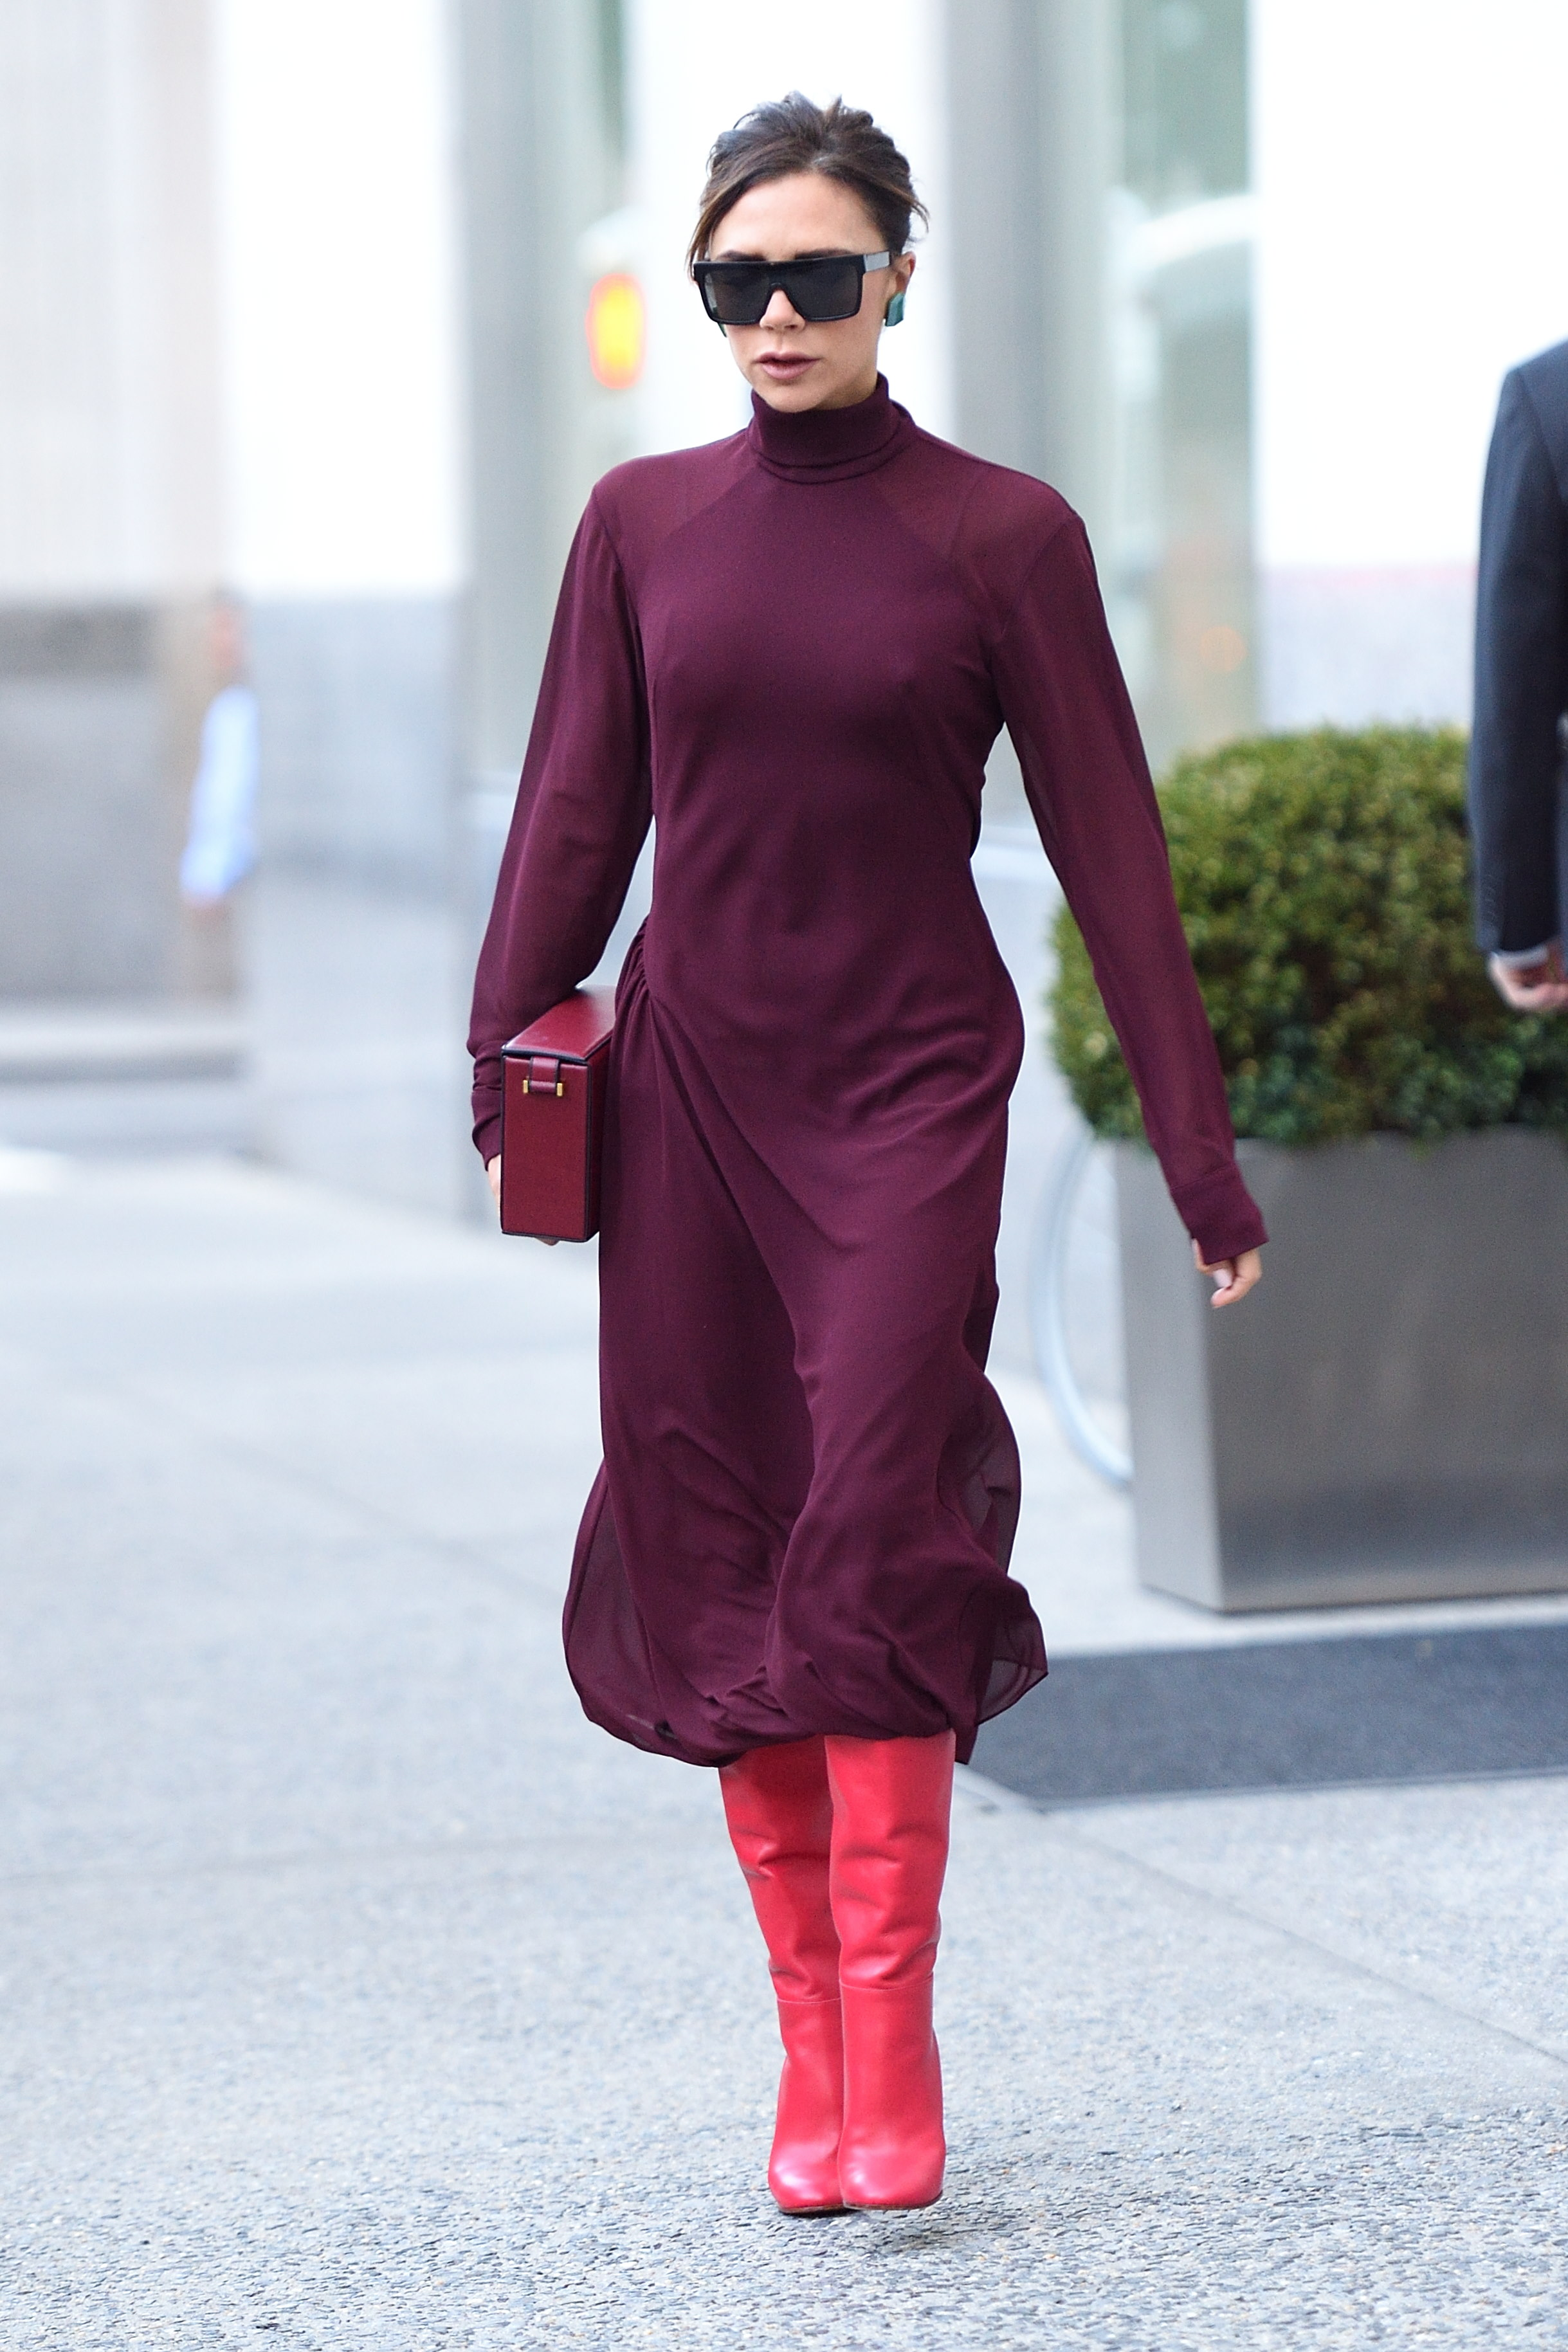 Victoria Beckham leaves her hotel in NYC. <P> Pictured: Victoria Beckham <B>Ref: SPL1601105  131017  </B><BR/> Picture by: Ron Asadorian / Splash News<BR/> </P><P> <B>Splash News and Pictures</B><BR/> Los Angeles:310-821-2666<BR/> New York:212-619-2666<BR/> London:870-934-2666<BR/> <span id=